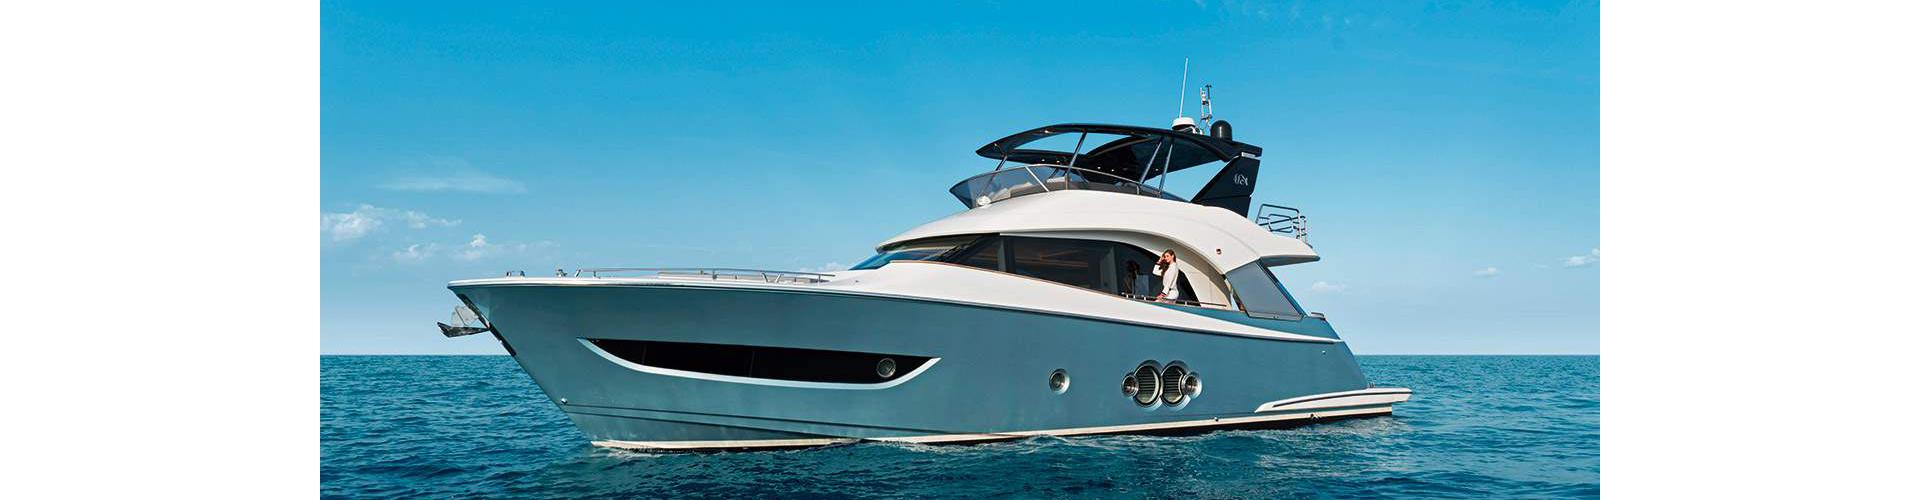 Monte Carlo Yacht 66